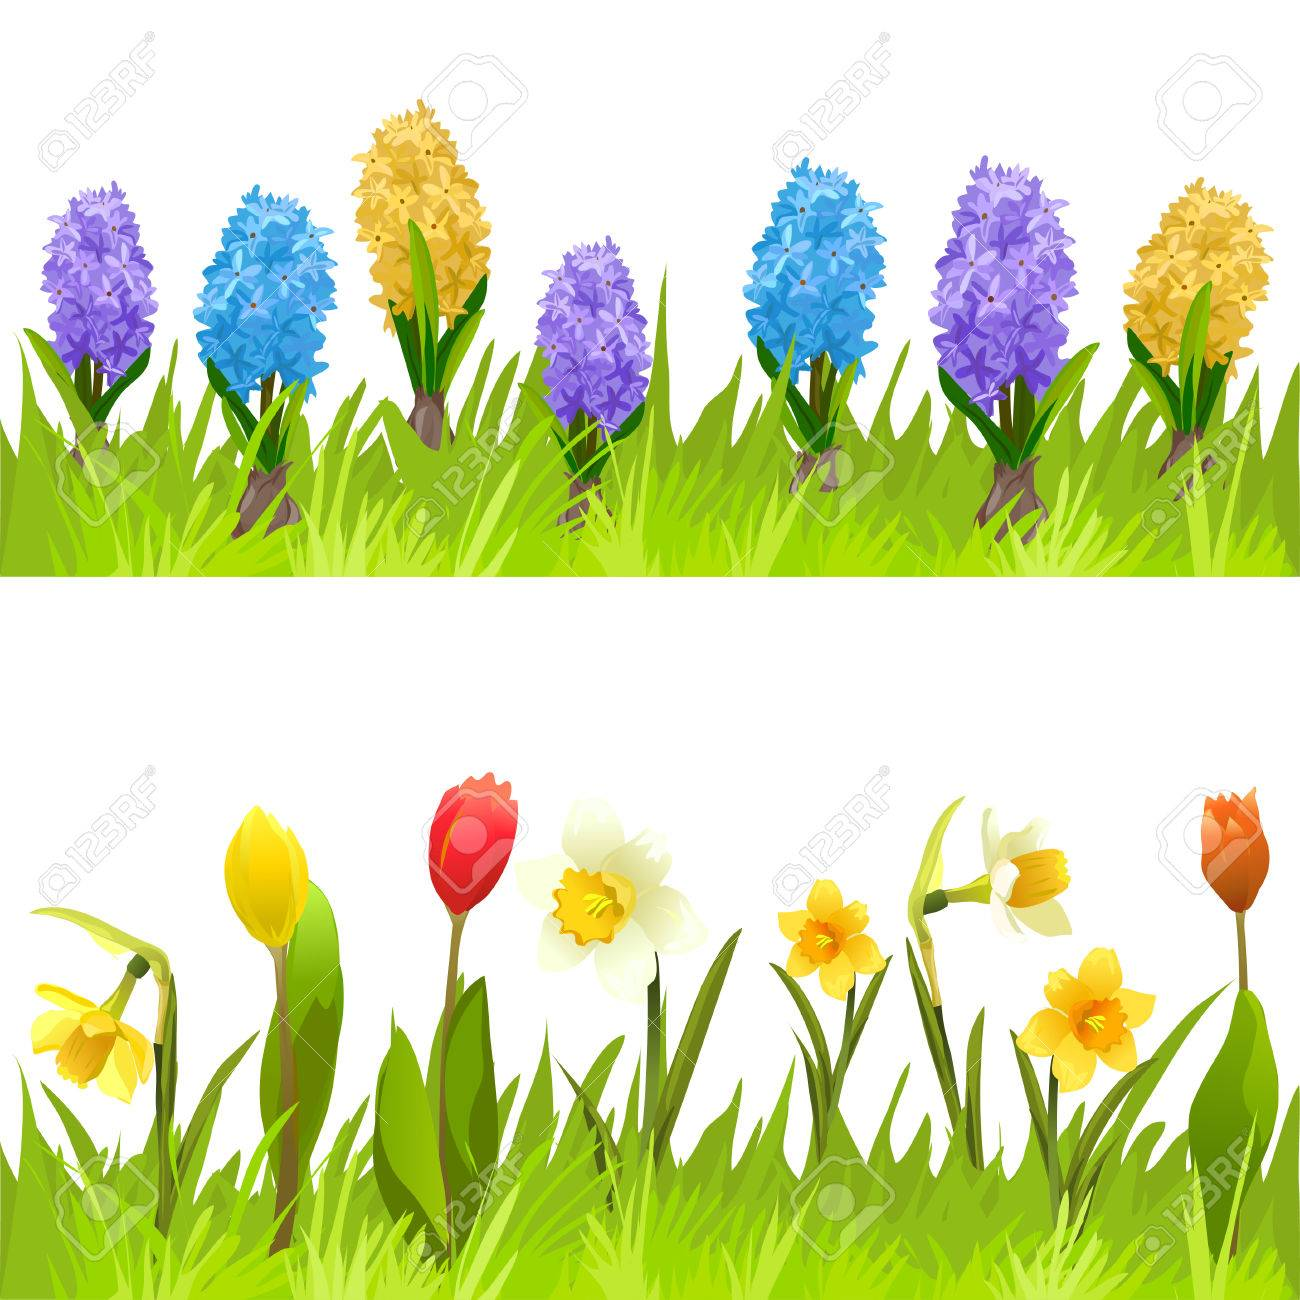 Banners With Spring Flowers Tulips Daffodils And Hyacinths